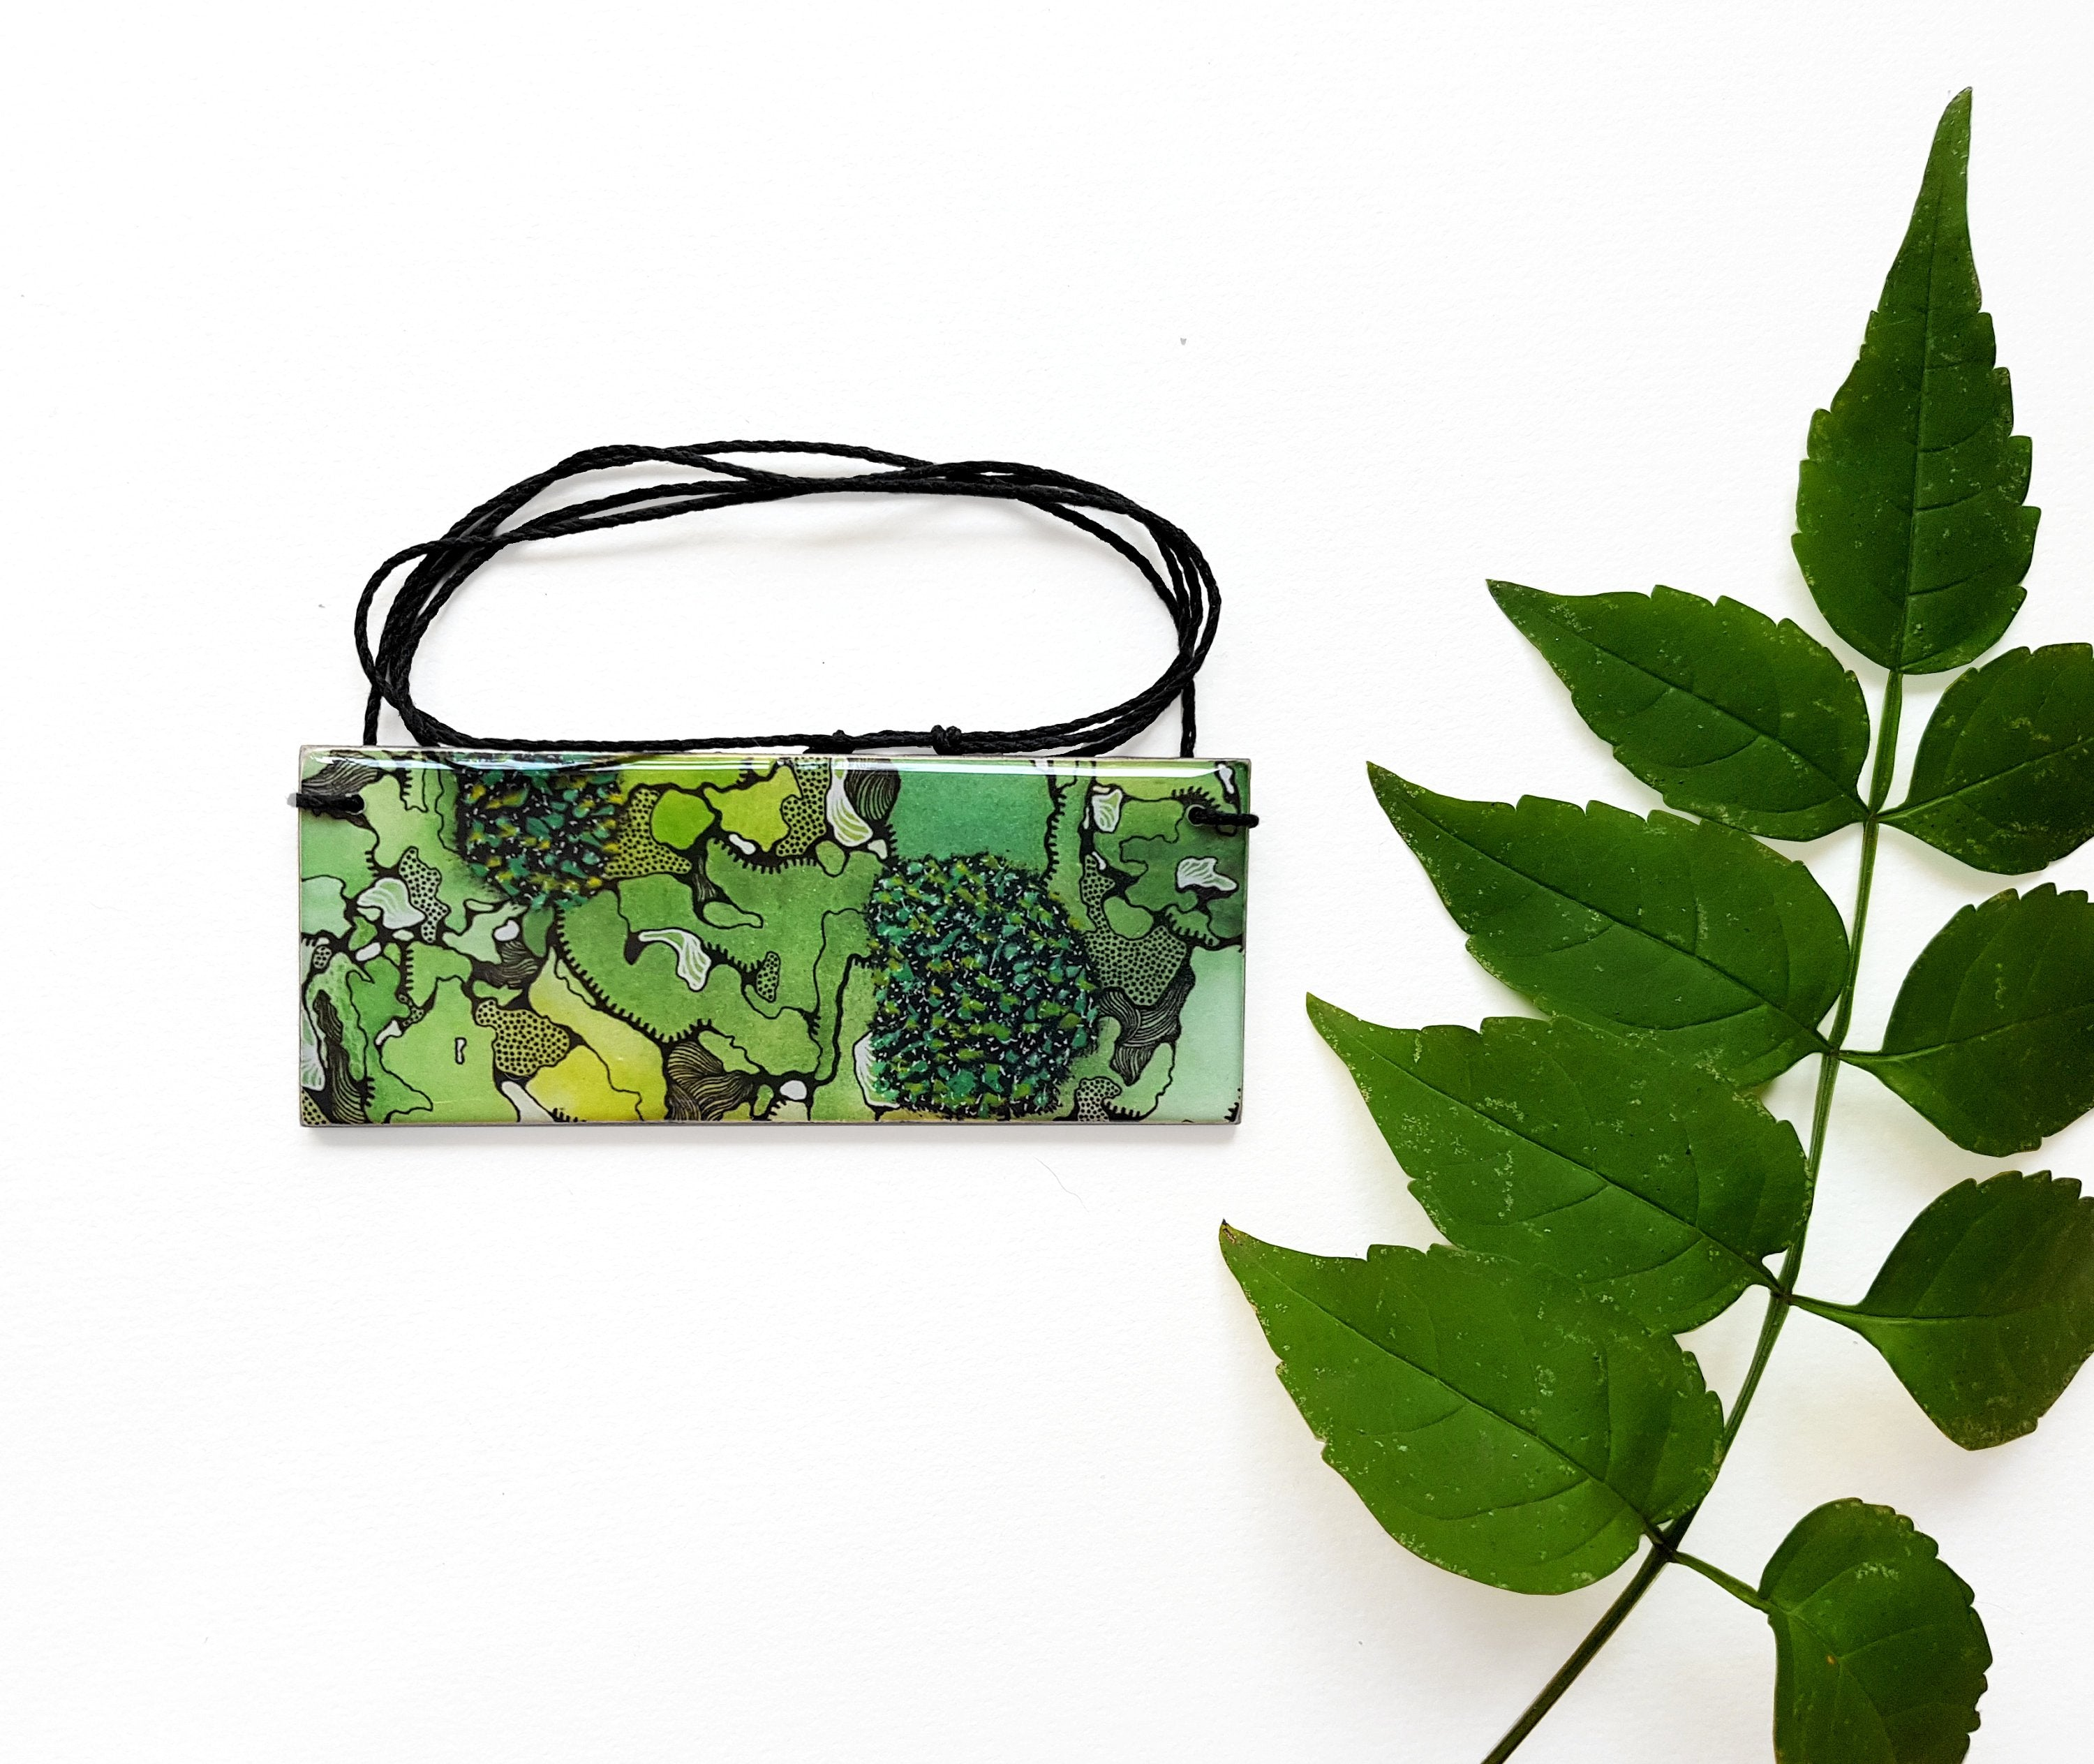 bar pendant necklace in the pattern greenery